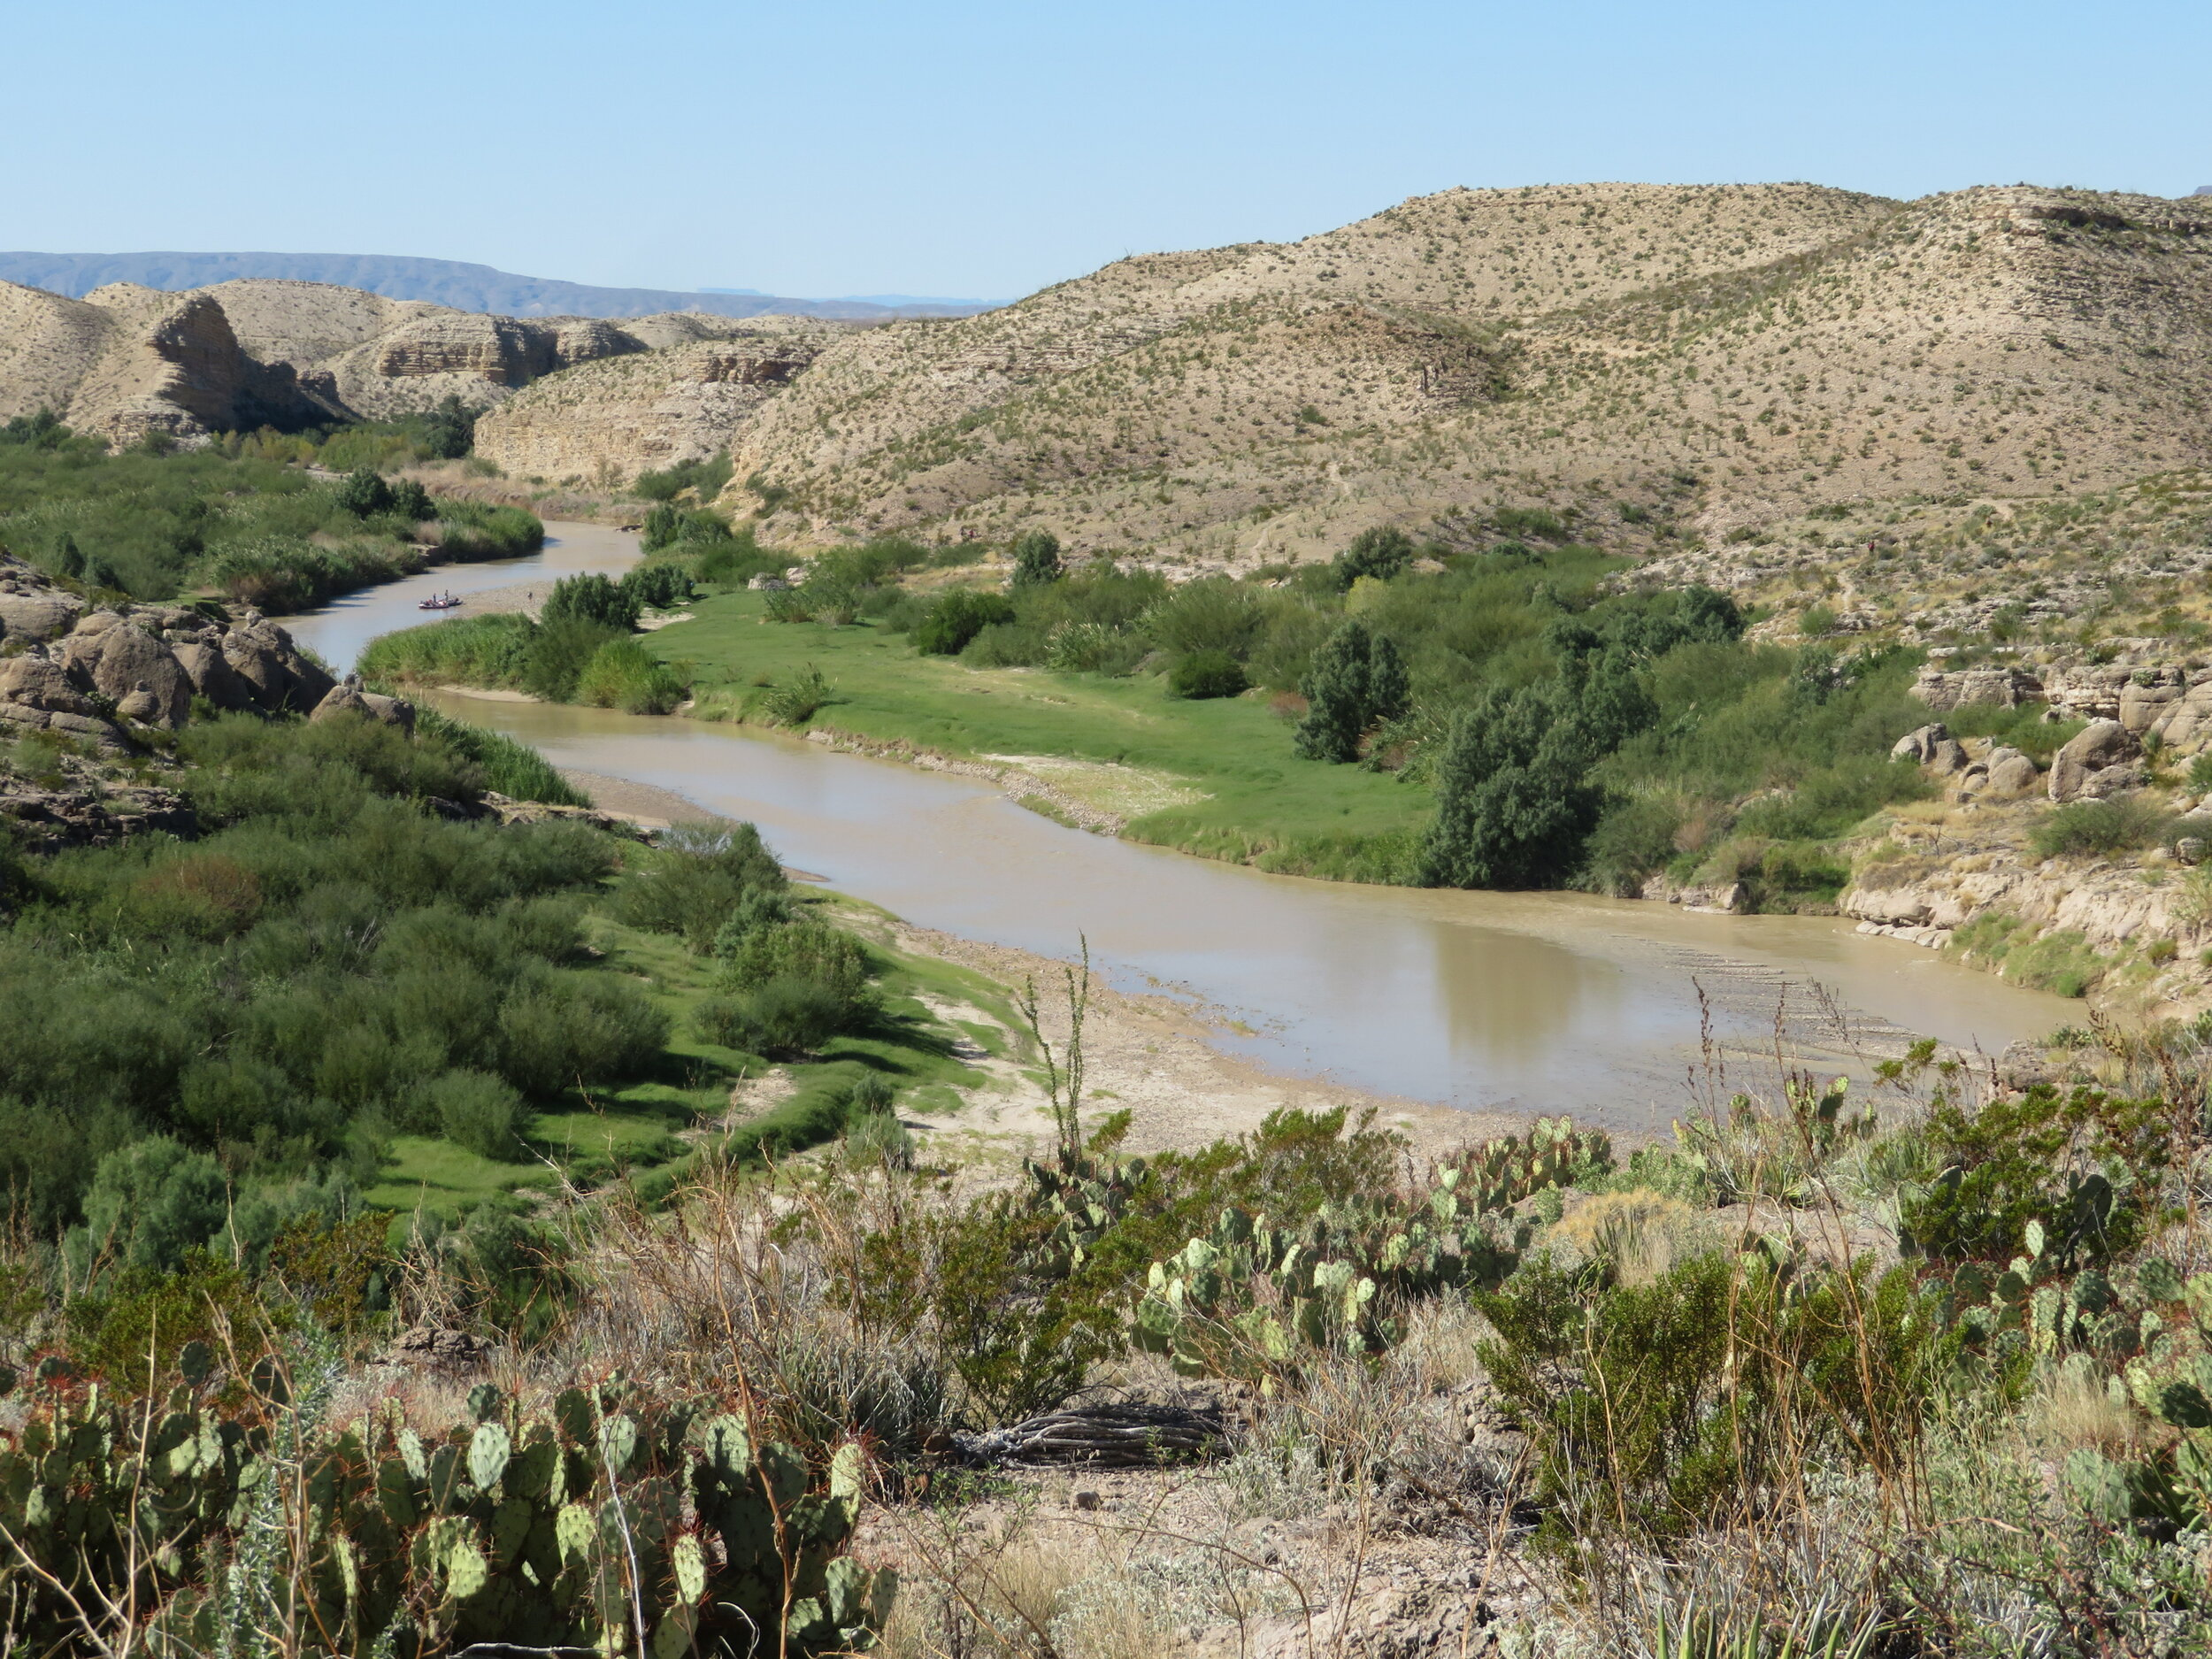 Awesome views of the Rio Grande